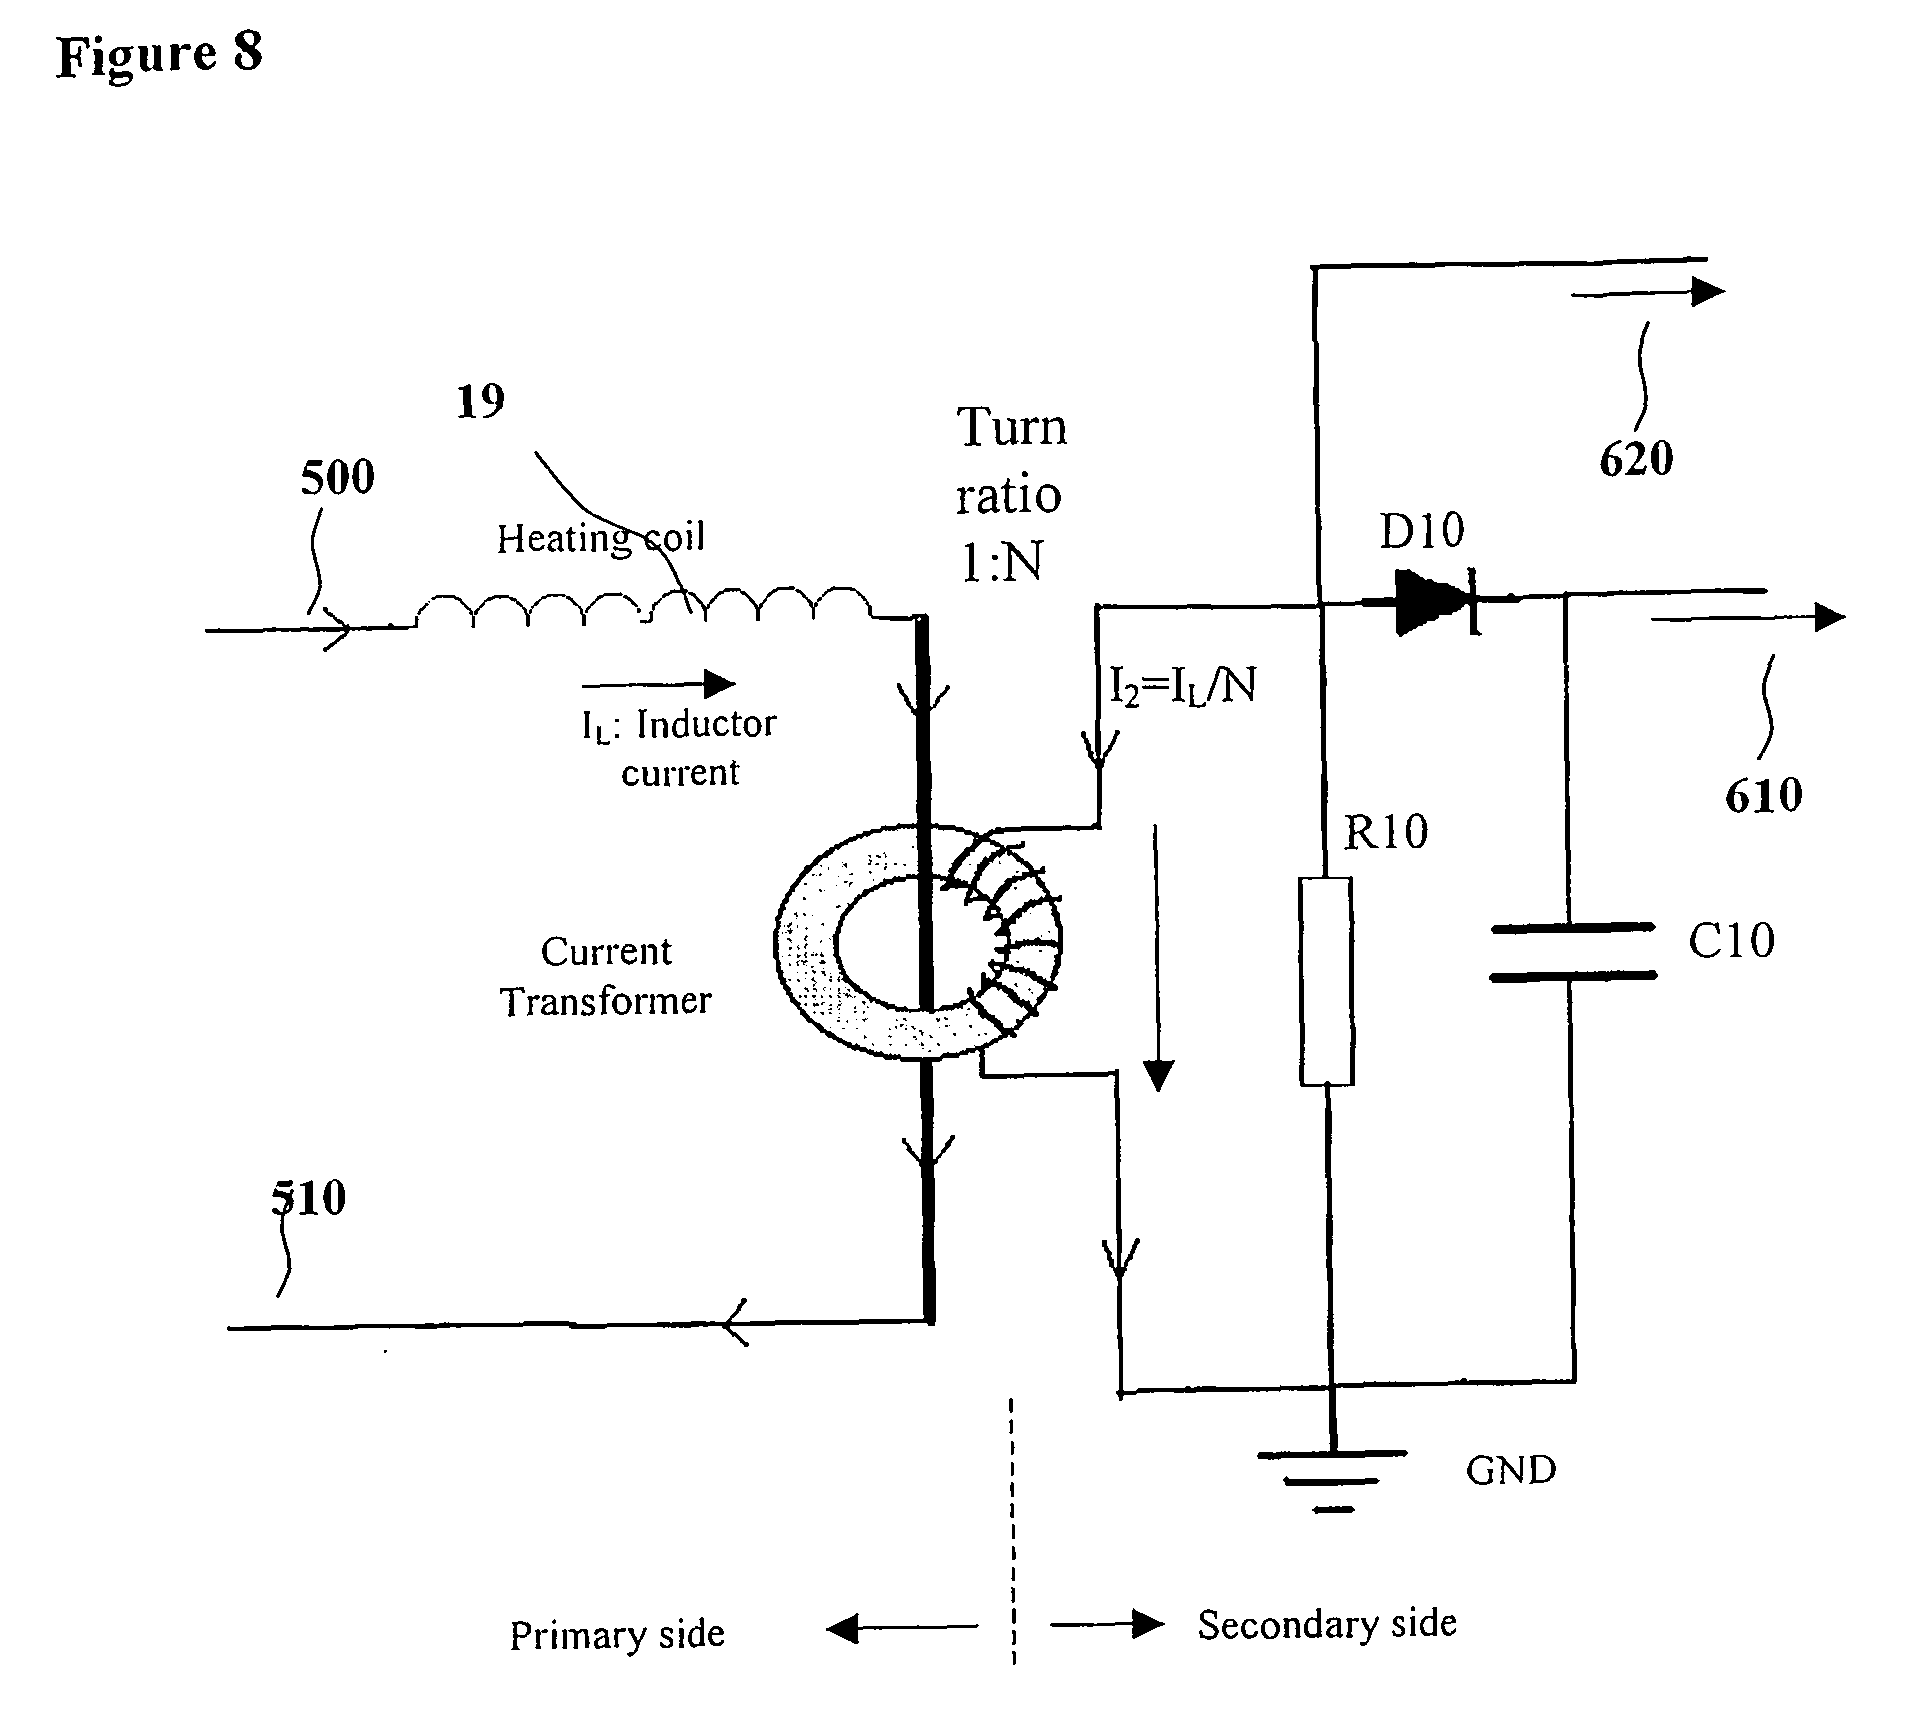 Wiring Diagram For Induction Hob Schematics Suggestions Circuit Check Stove Source Electric Not